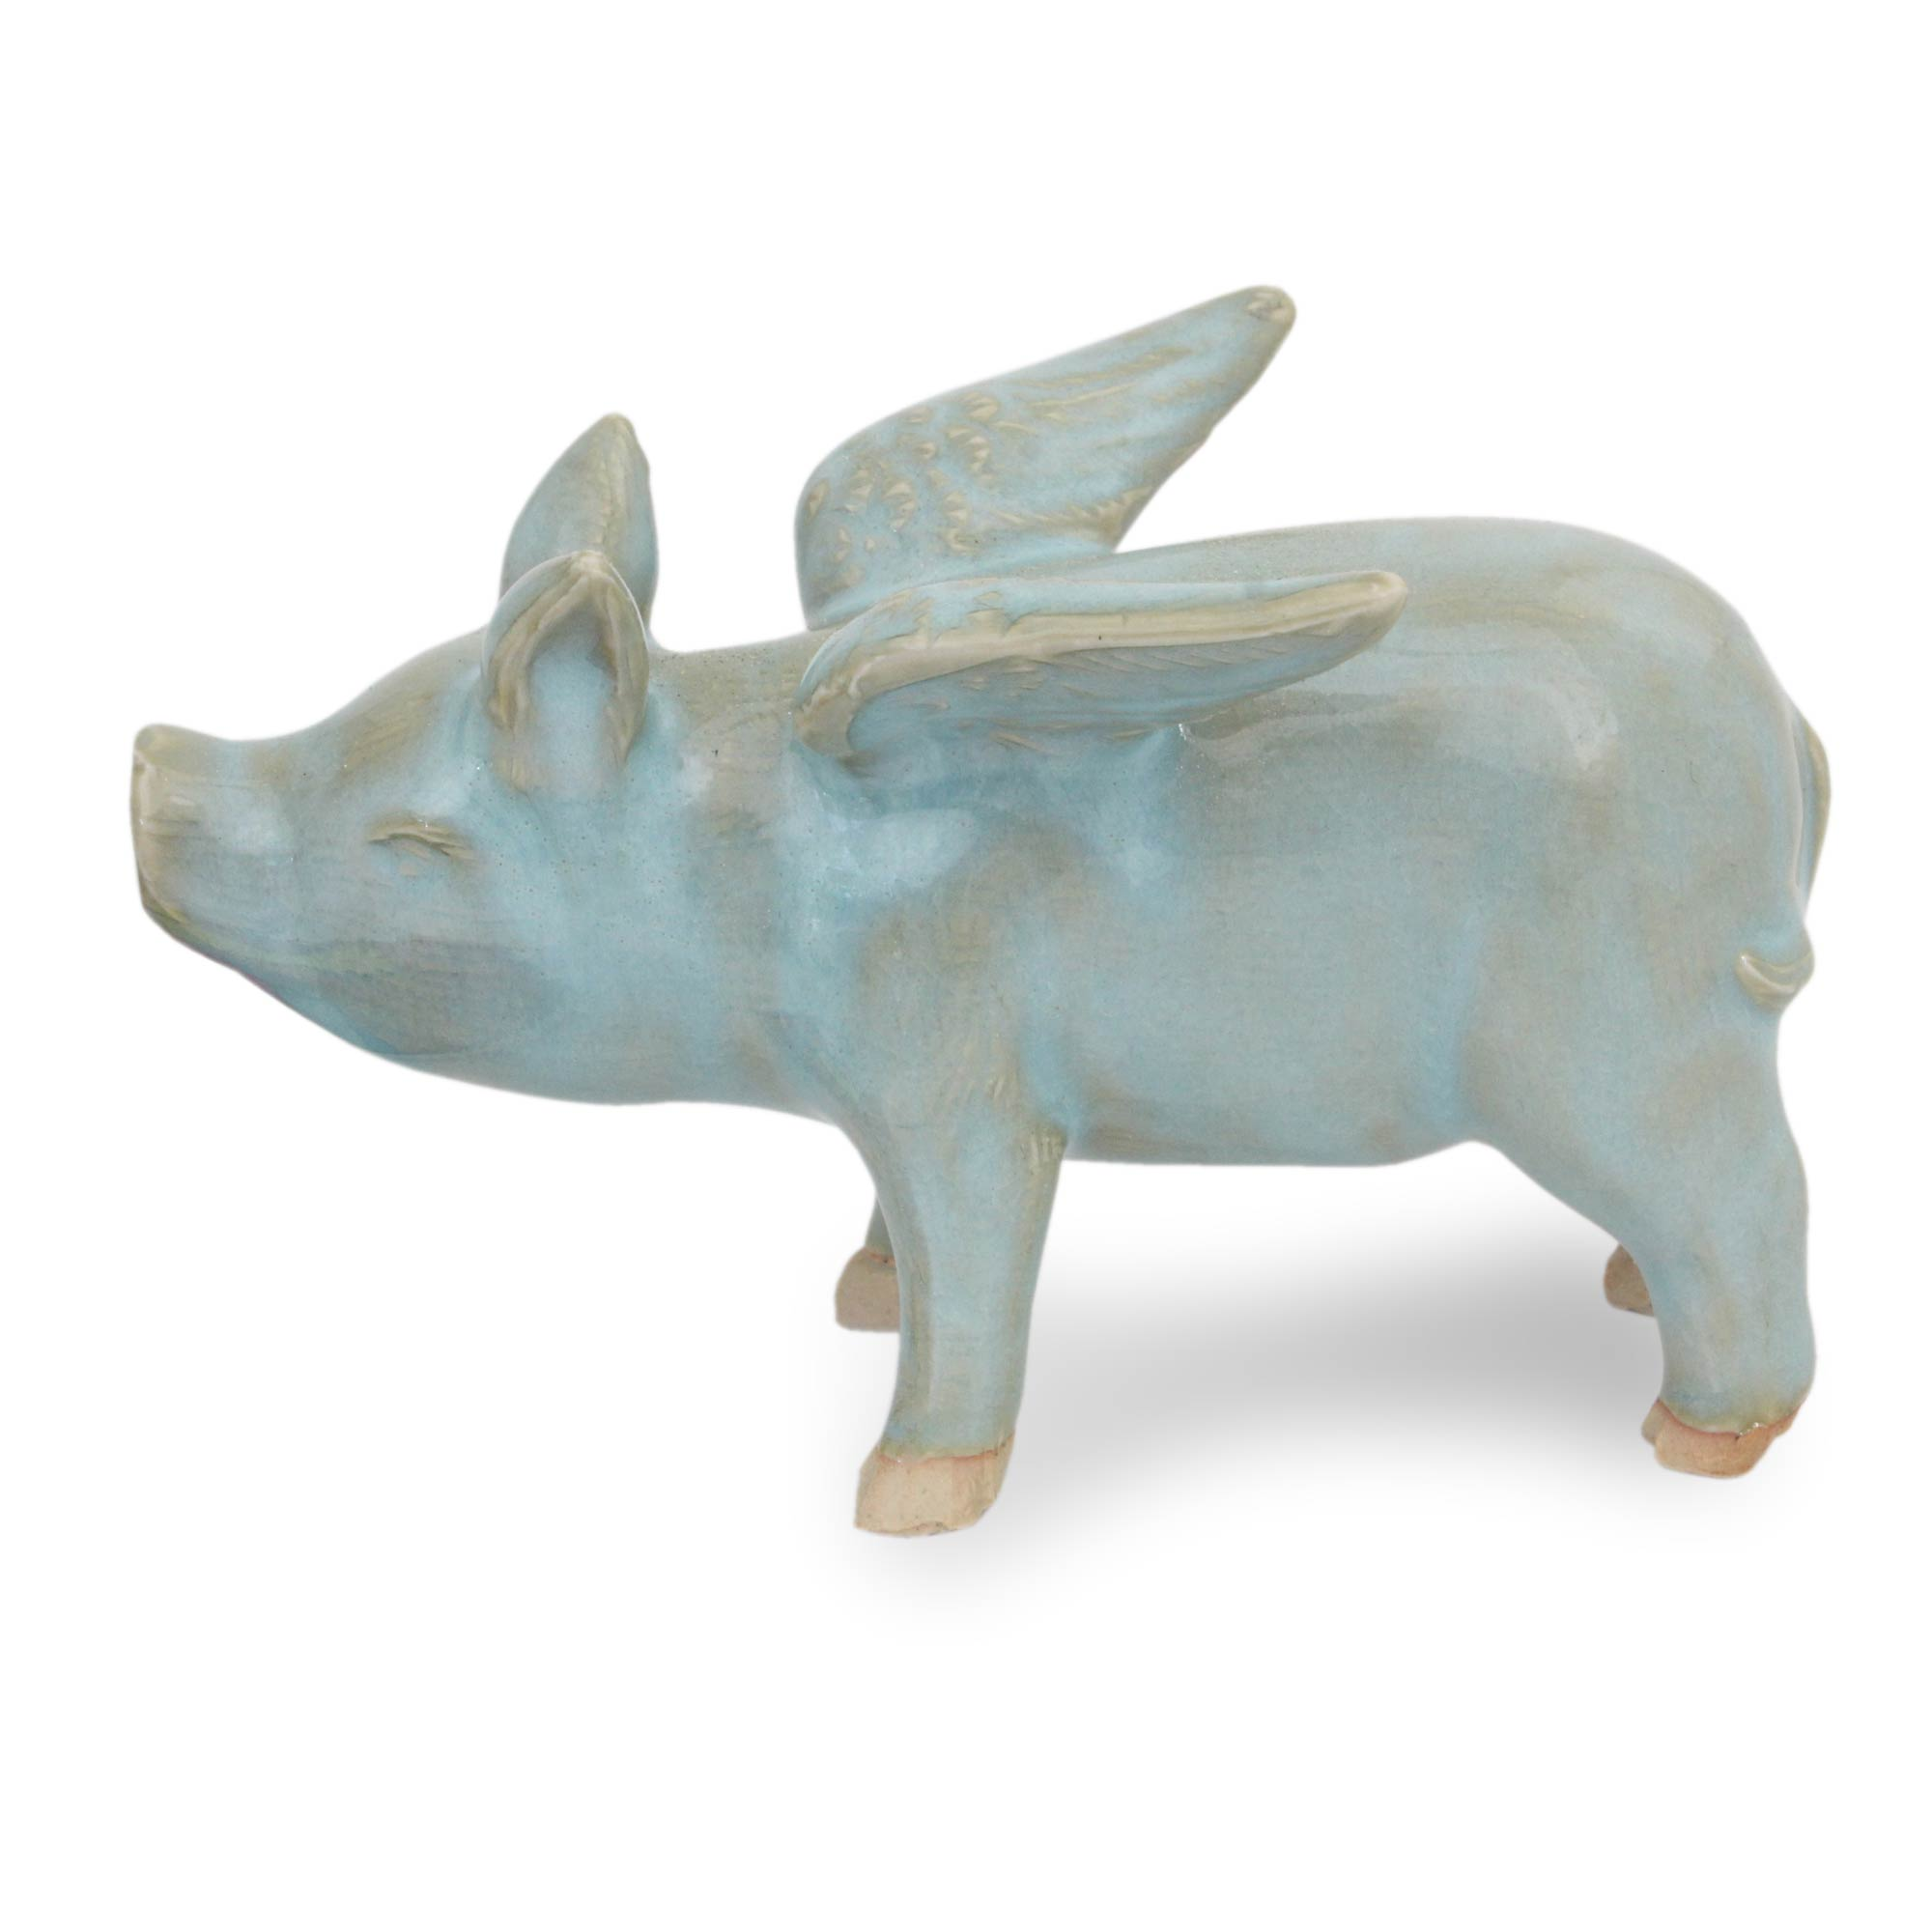 UNICEF Market | Original Handcrafted Ceramic Pig with Wings ...